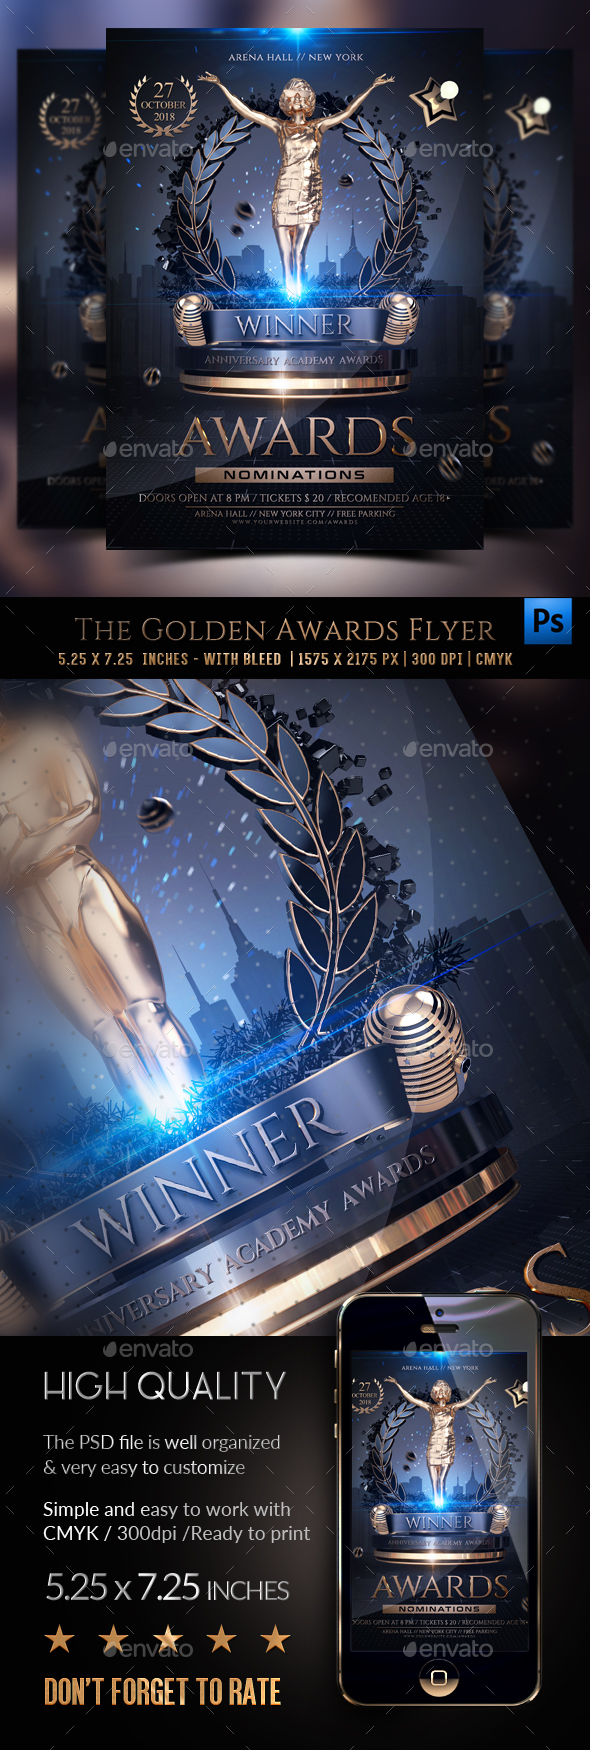 The Golden Awards Flyer Template - Clubs & Parties Events